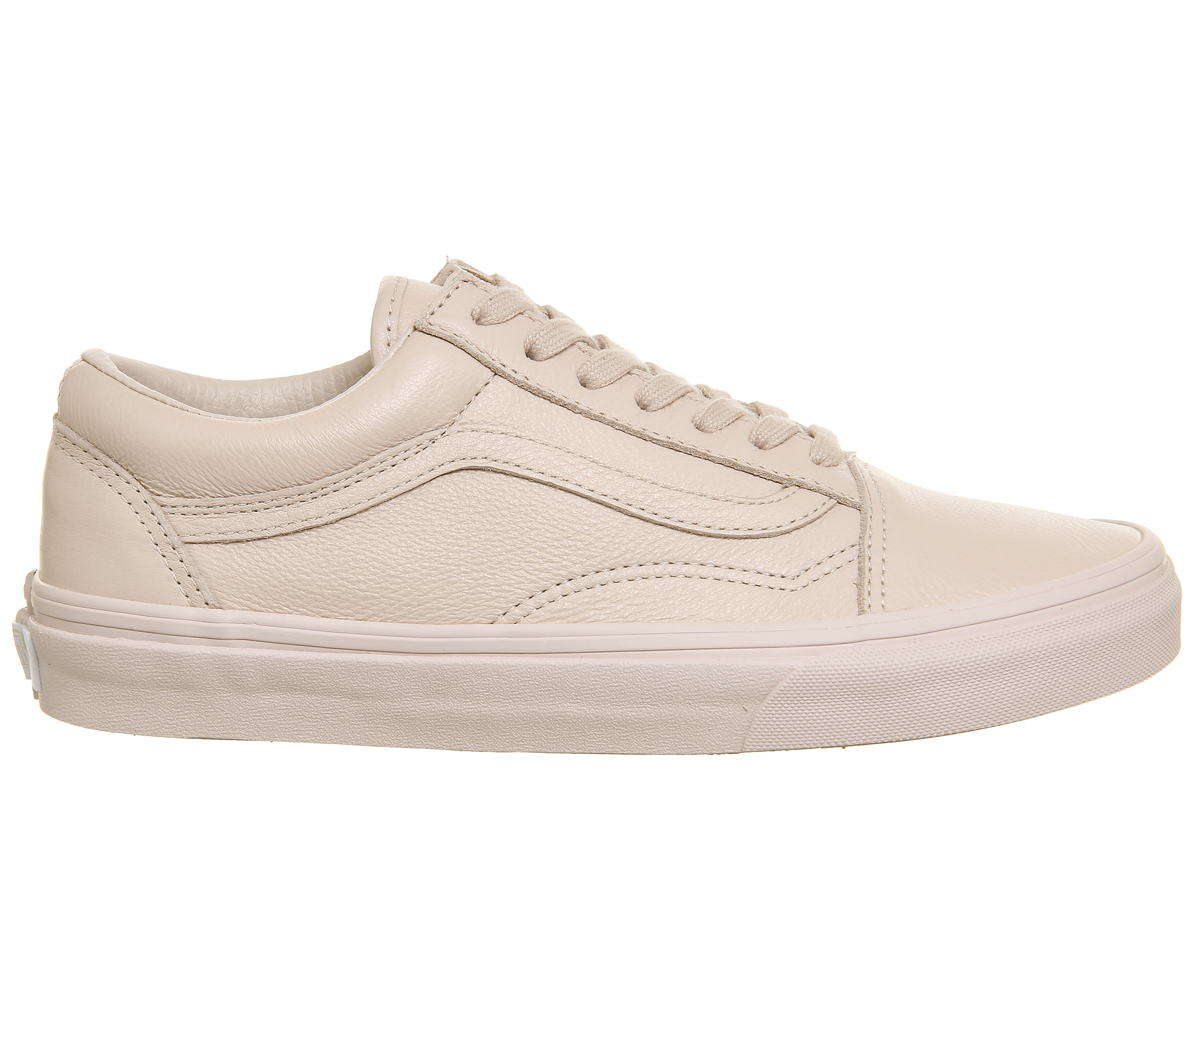 Womens Vans Old Skool Trainers SEPIA ROSE MONO Trainers Shoes  ddb0a89946